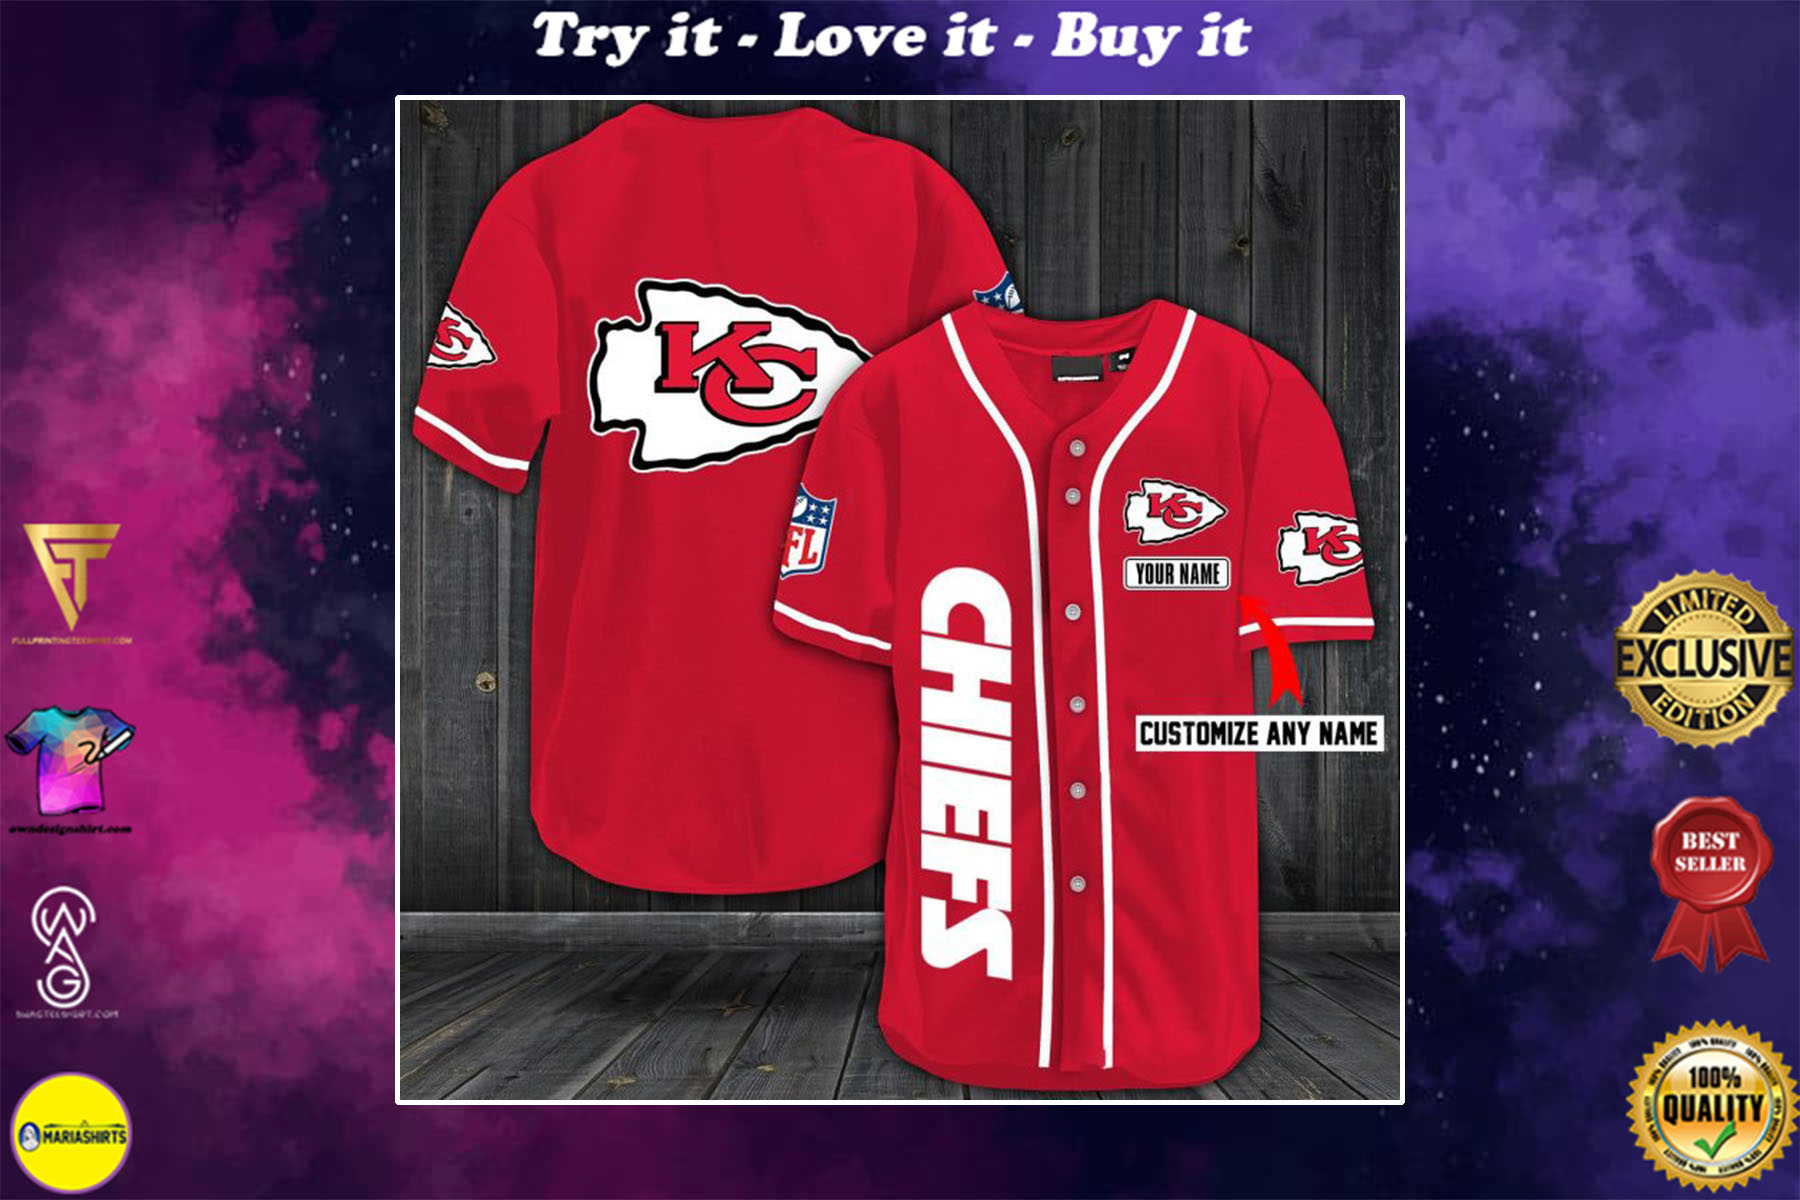 [special edition] personalized name jersey kansas city chiefs shirt - maria